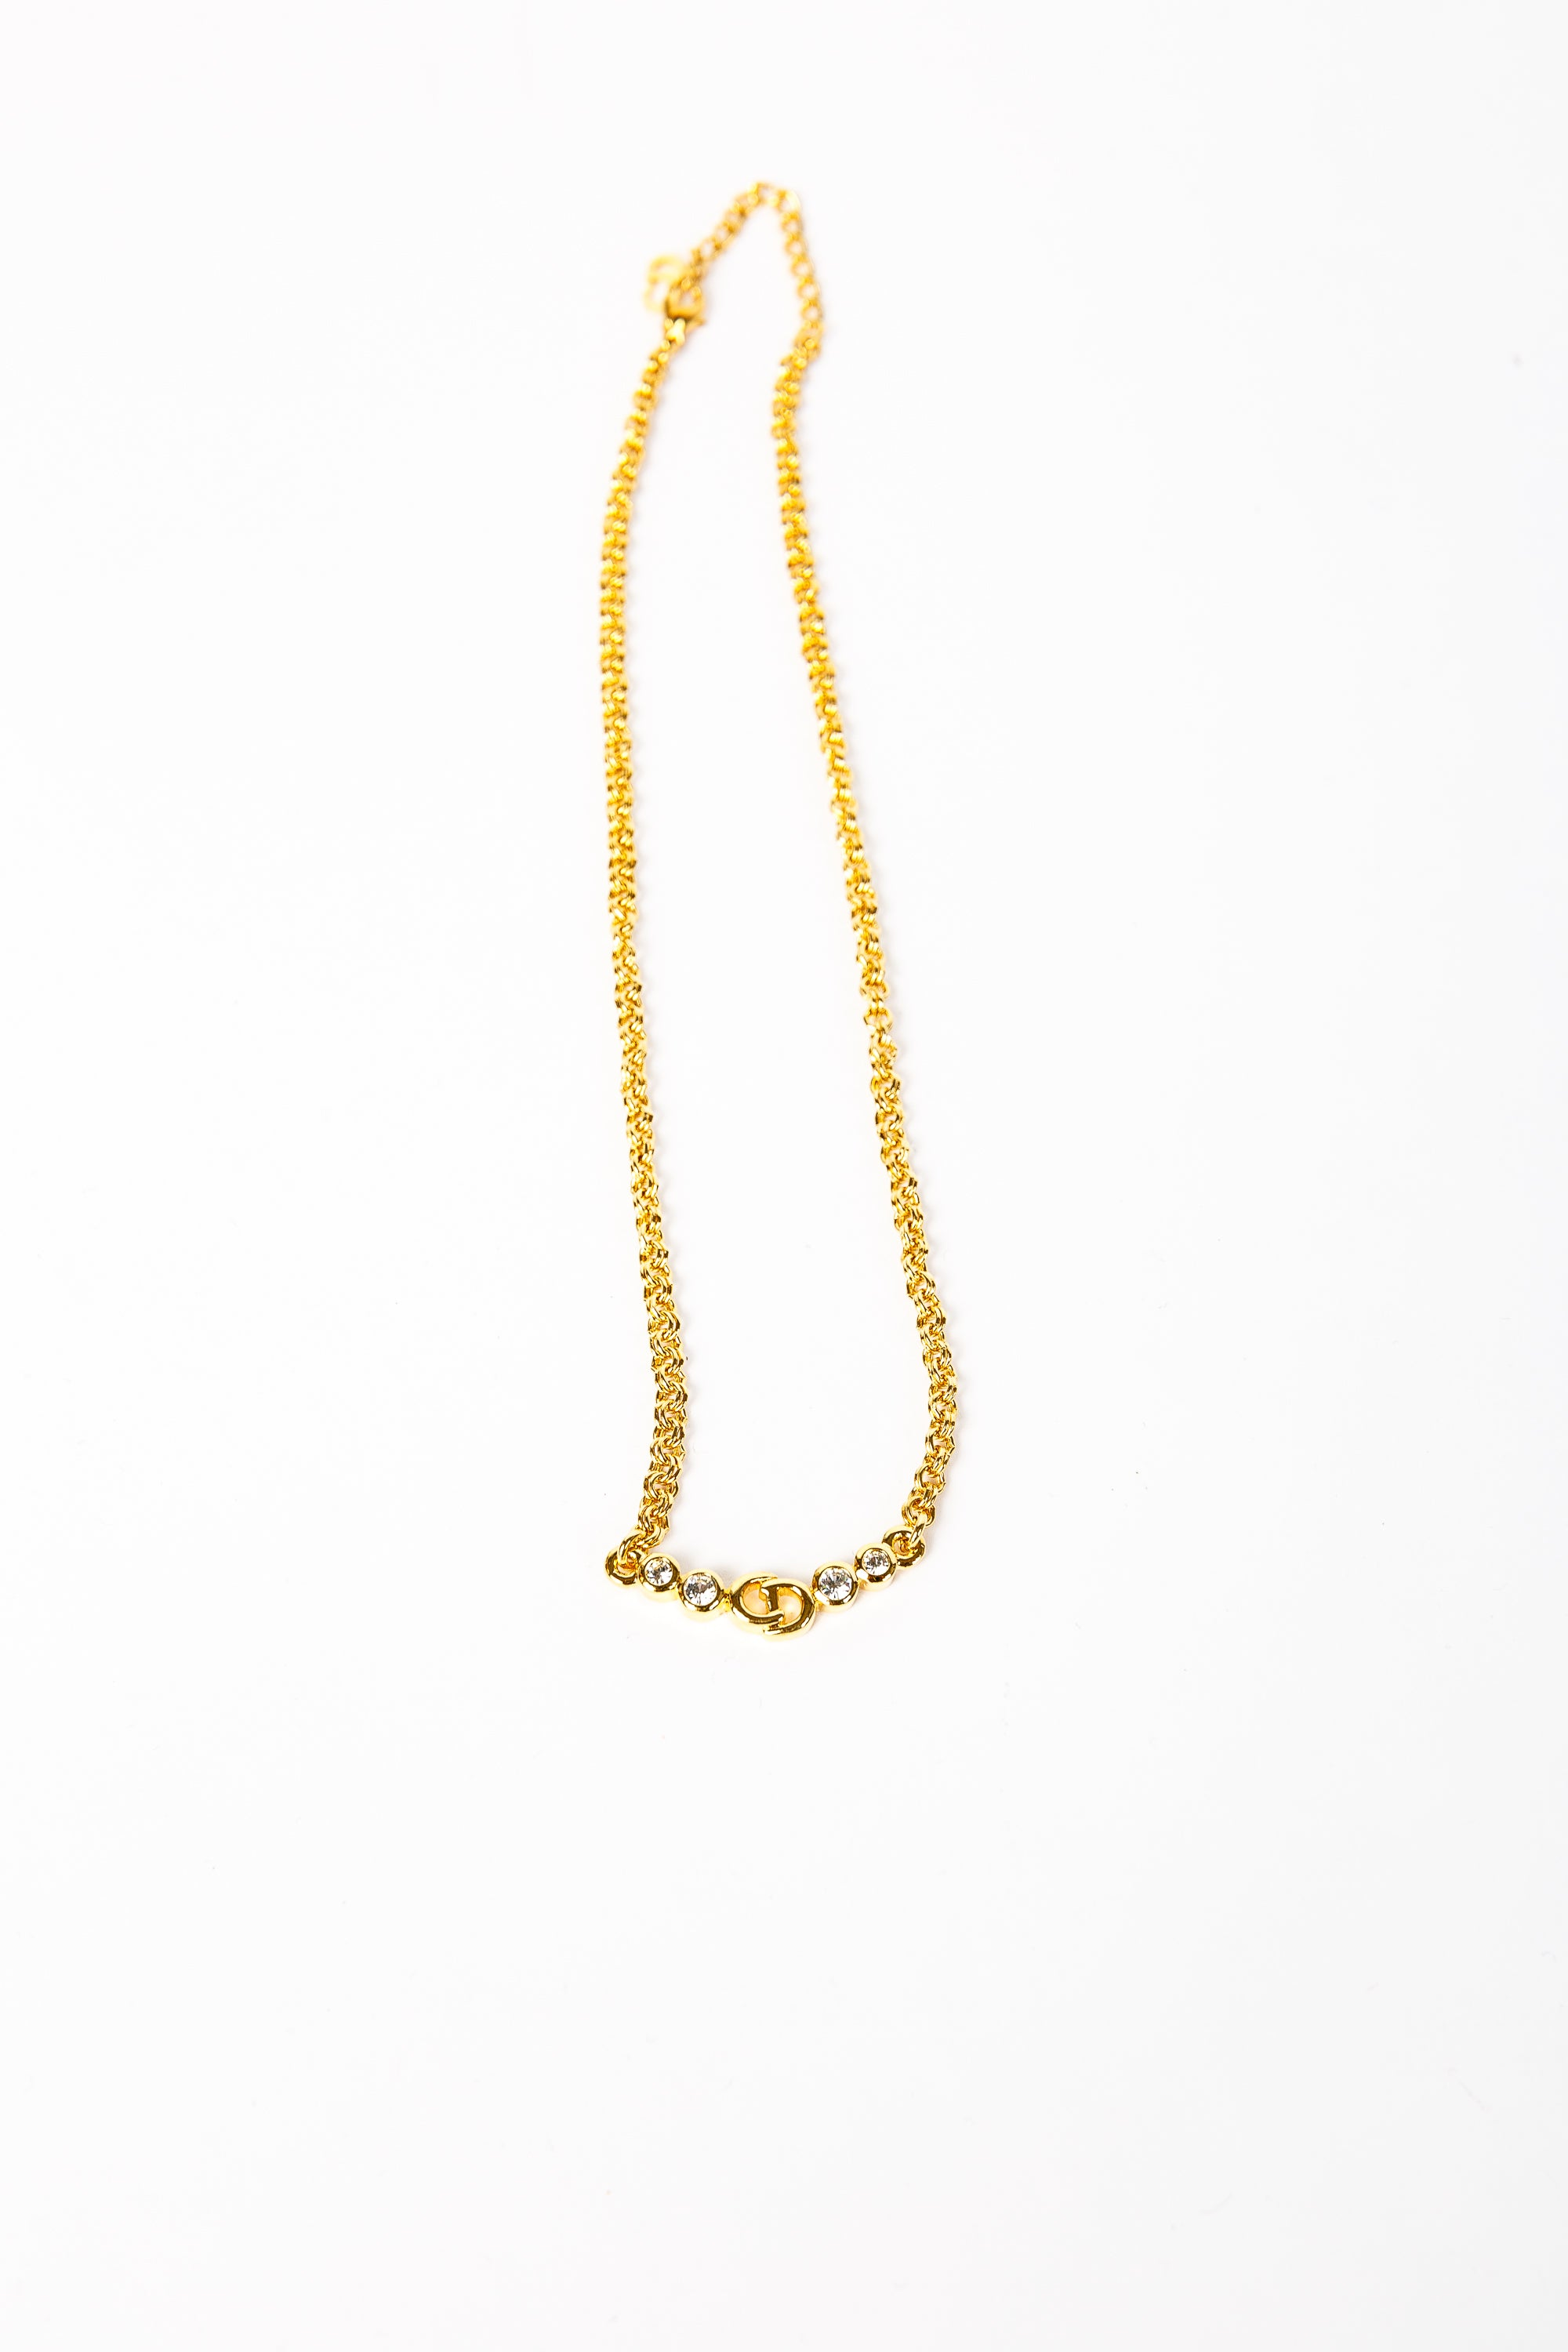 Dior Initial Necklace